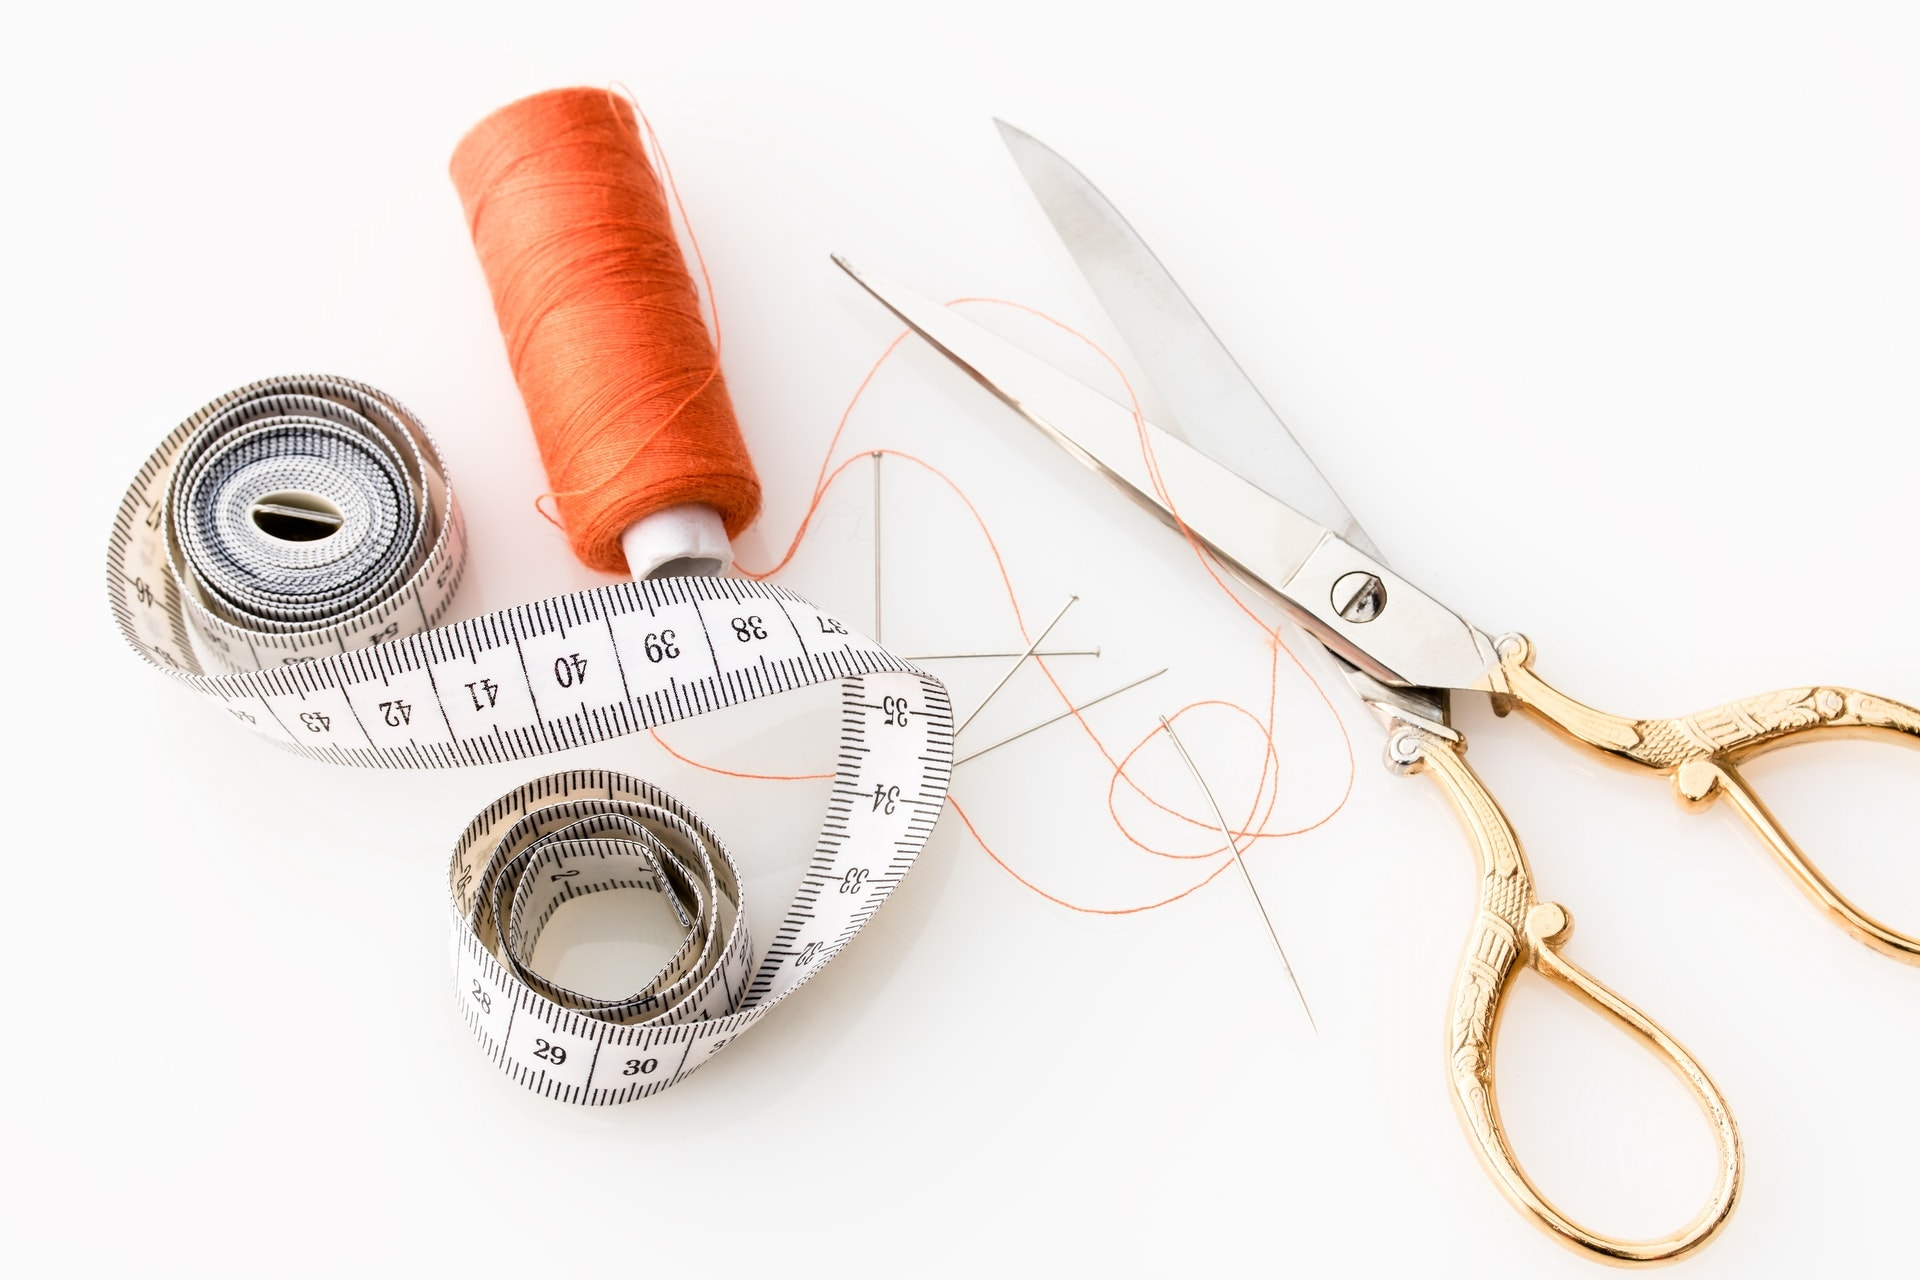 How do I stop my thread from knotting?